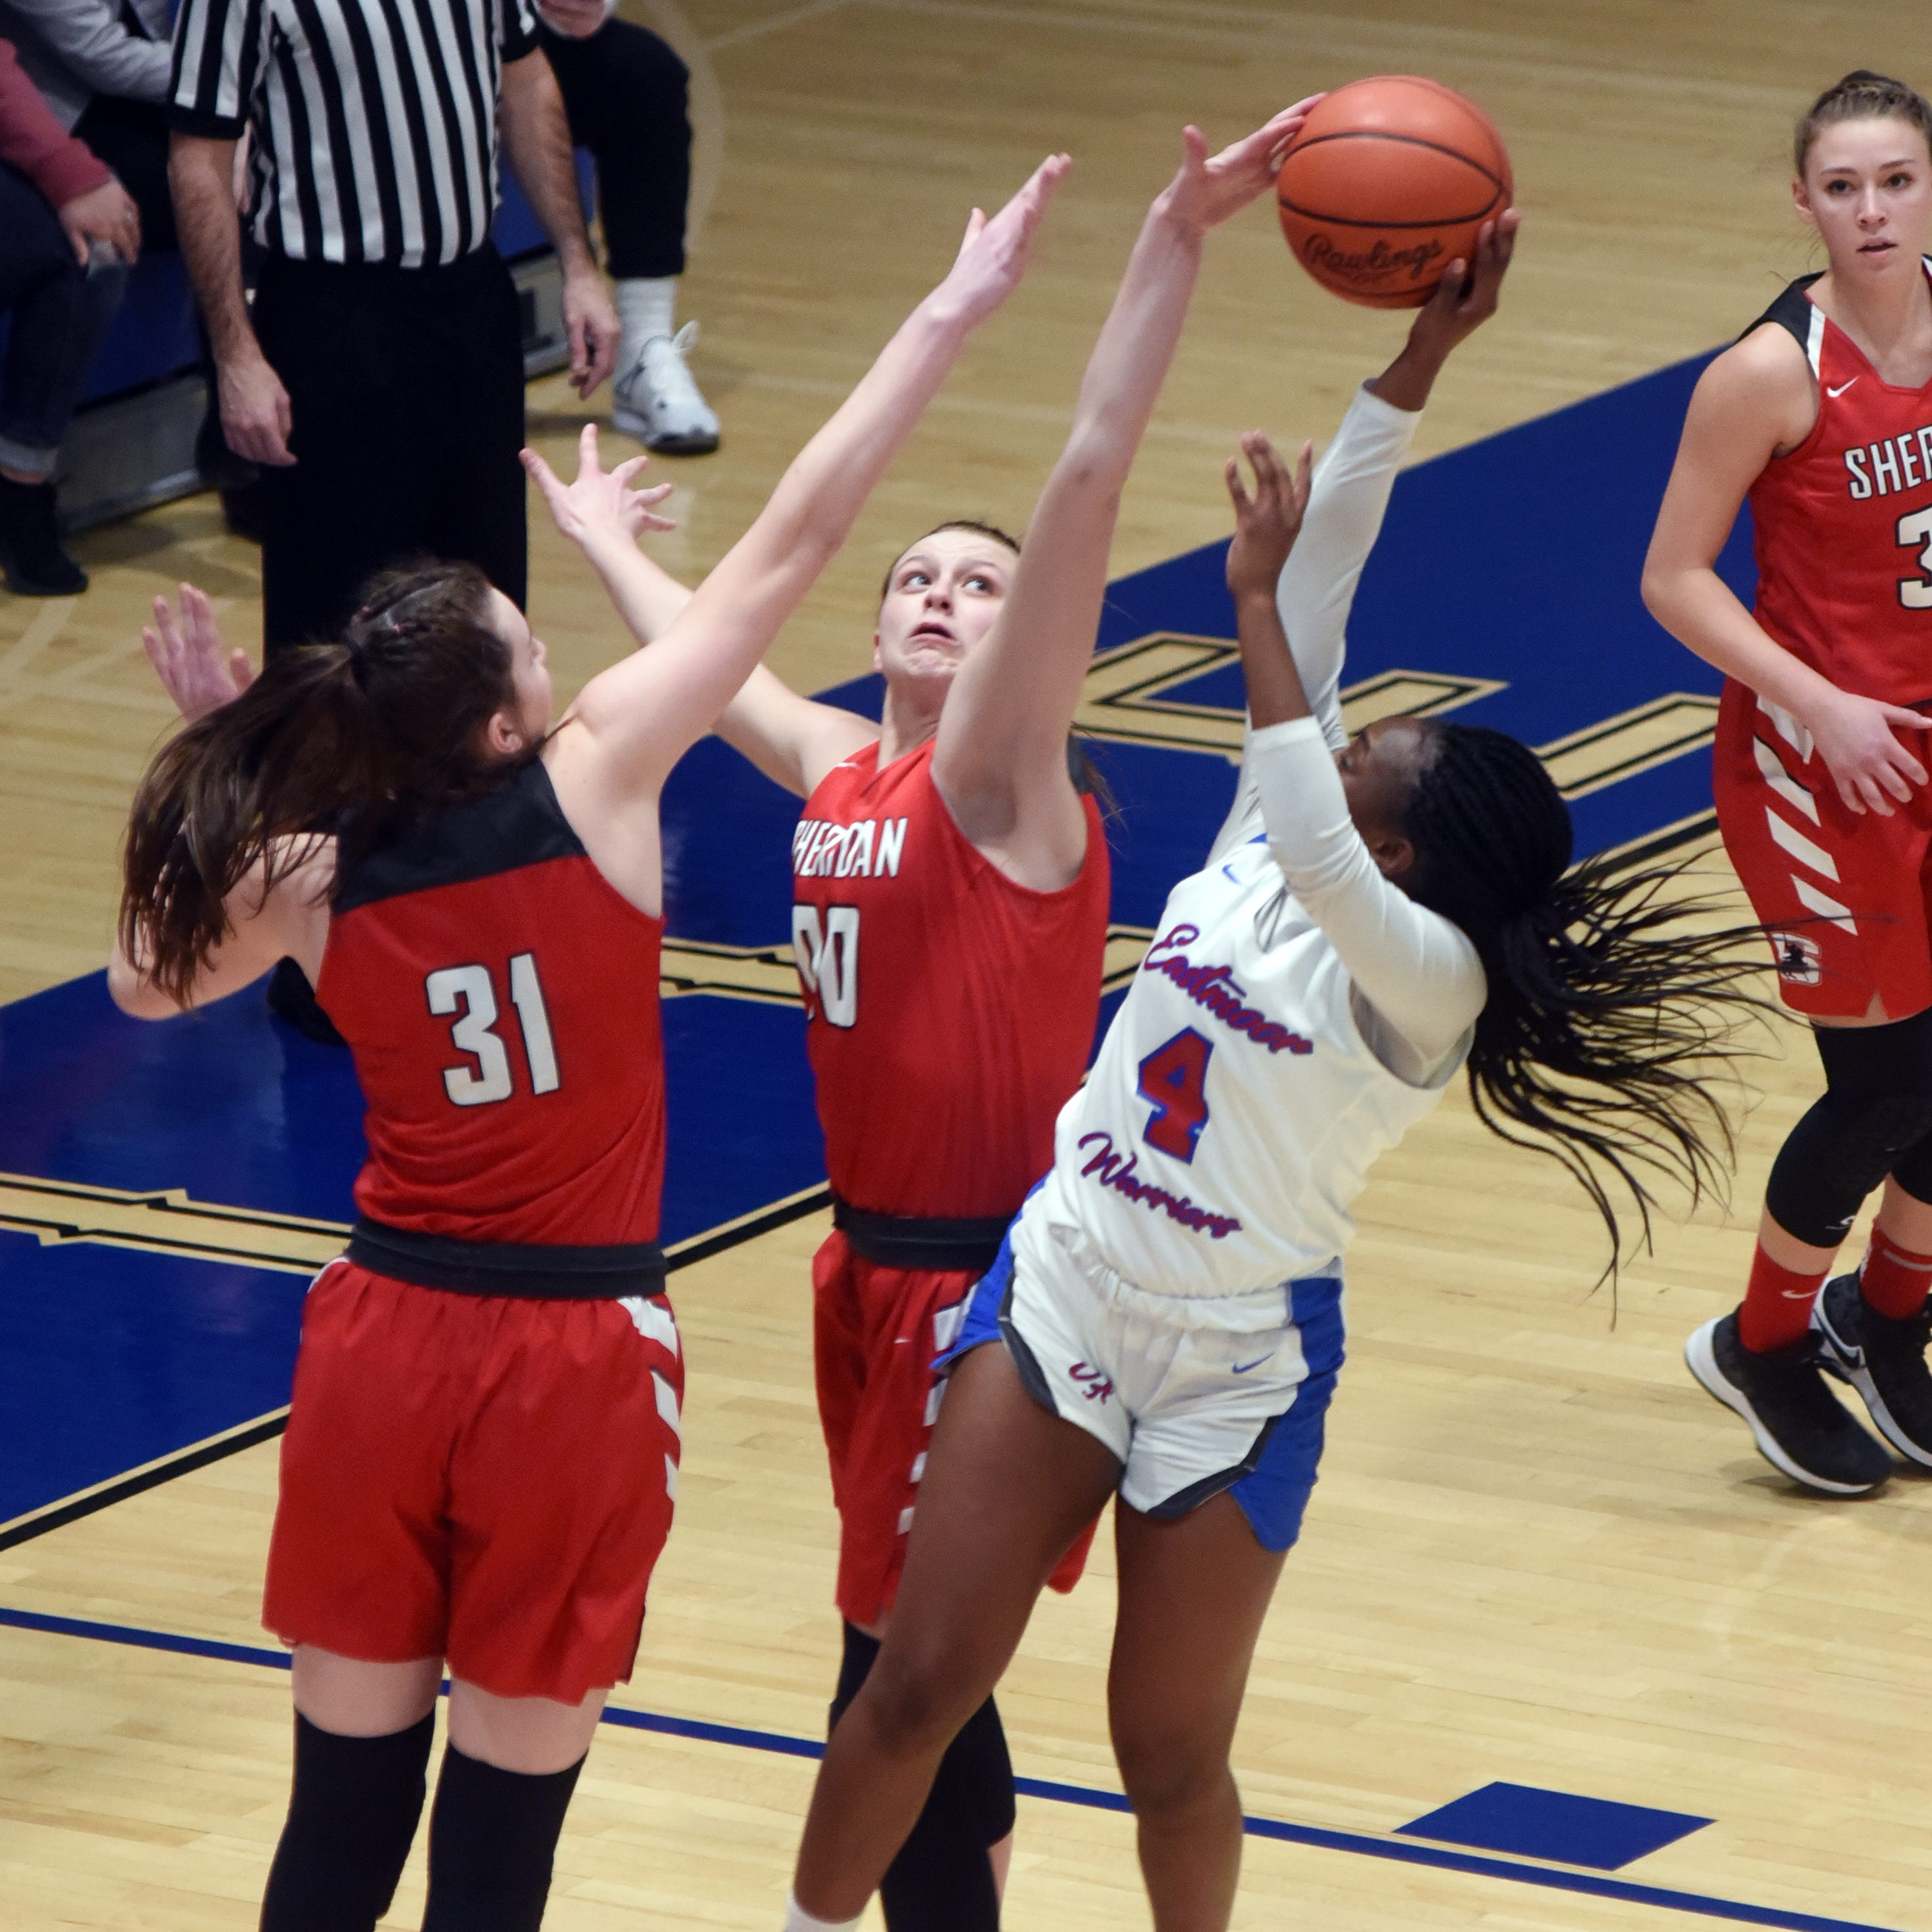 Sheridan marches into Elite 8, familiar foe awaits